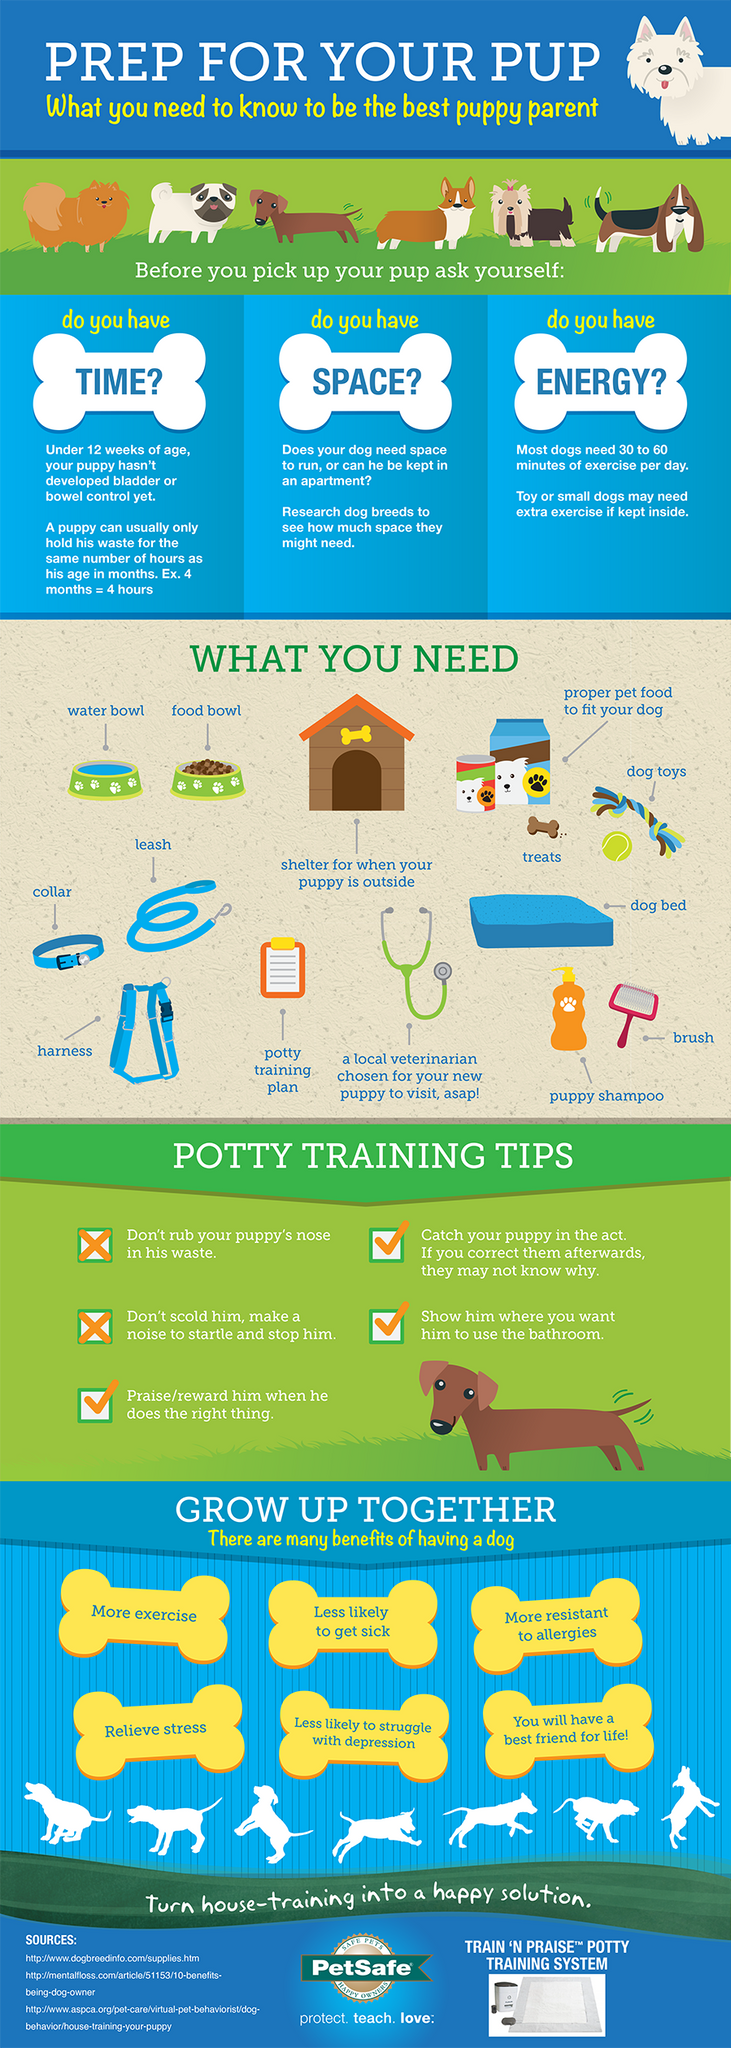 Prep For Your Pup